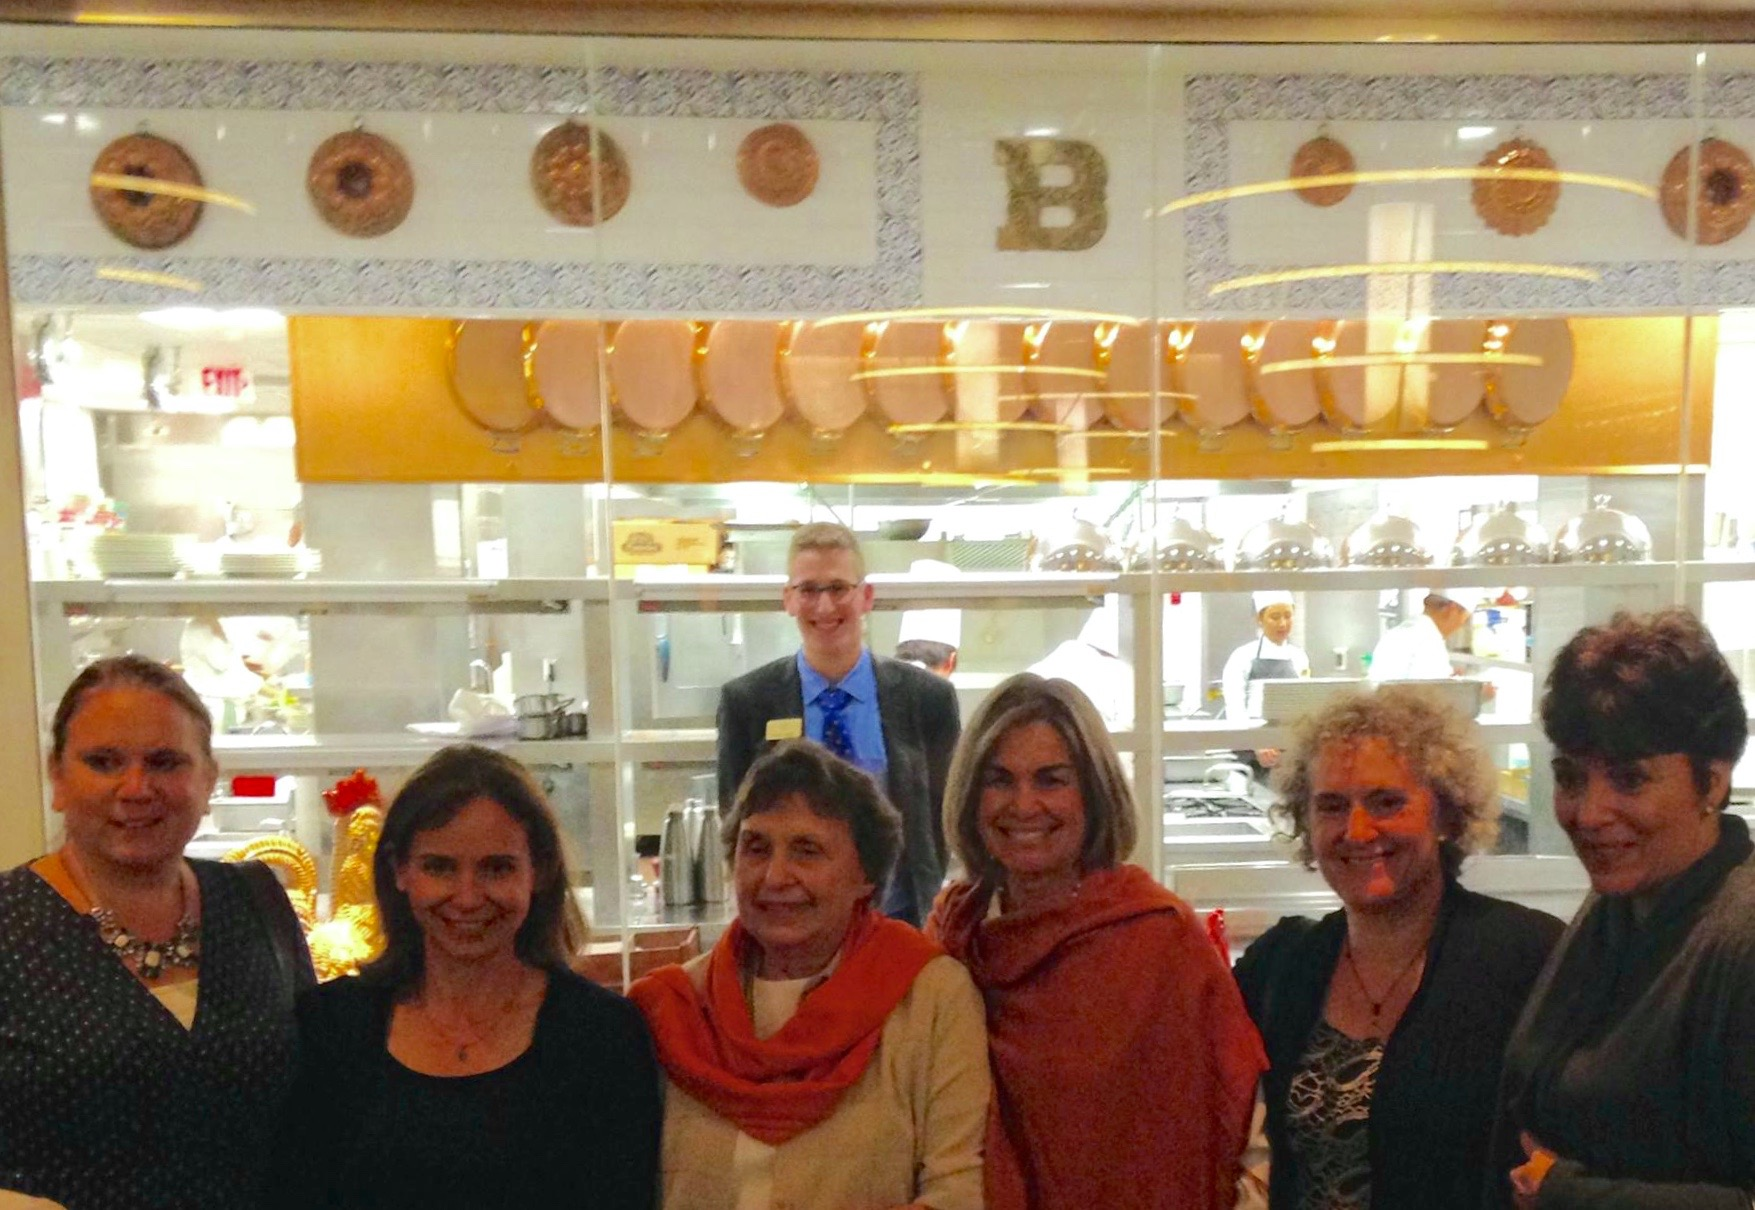 SIX OF THE FRENCH FRIDAYS WITH DORIE GROUP DINING AT THE BOCUSE RESTAURANT AT THE CIA.  Patty Stormer photo.